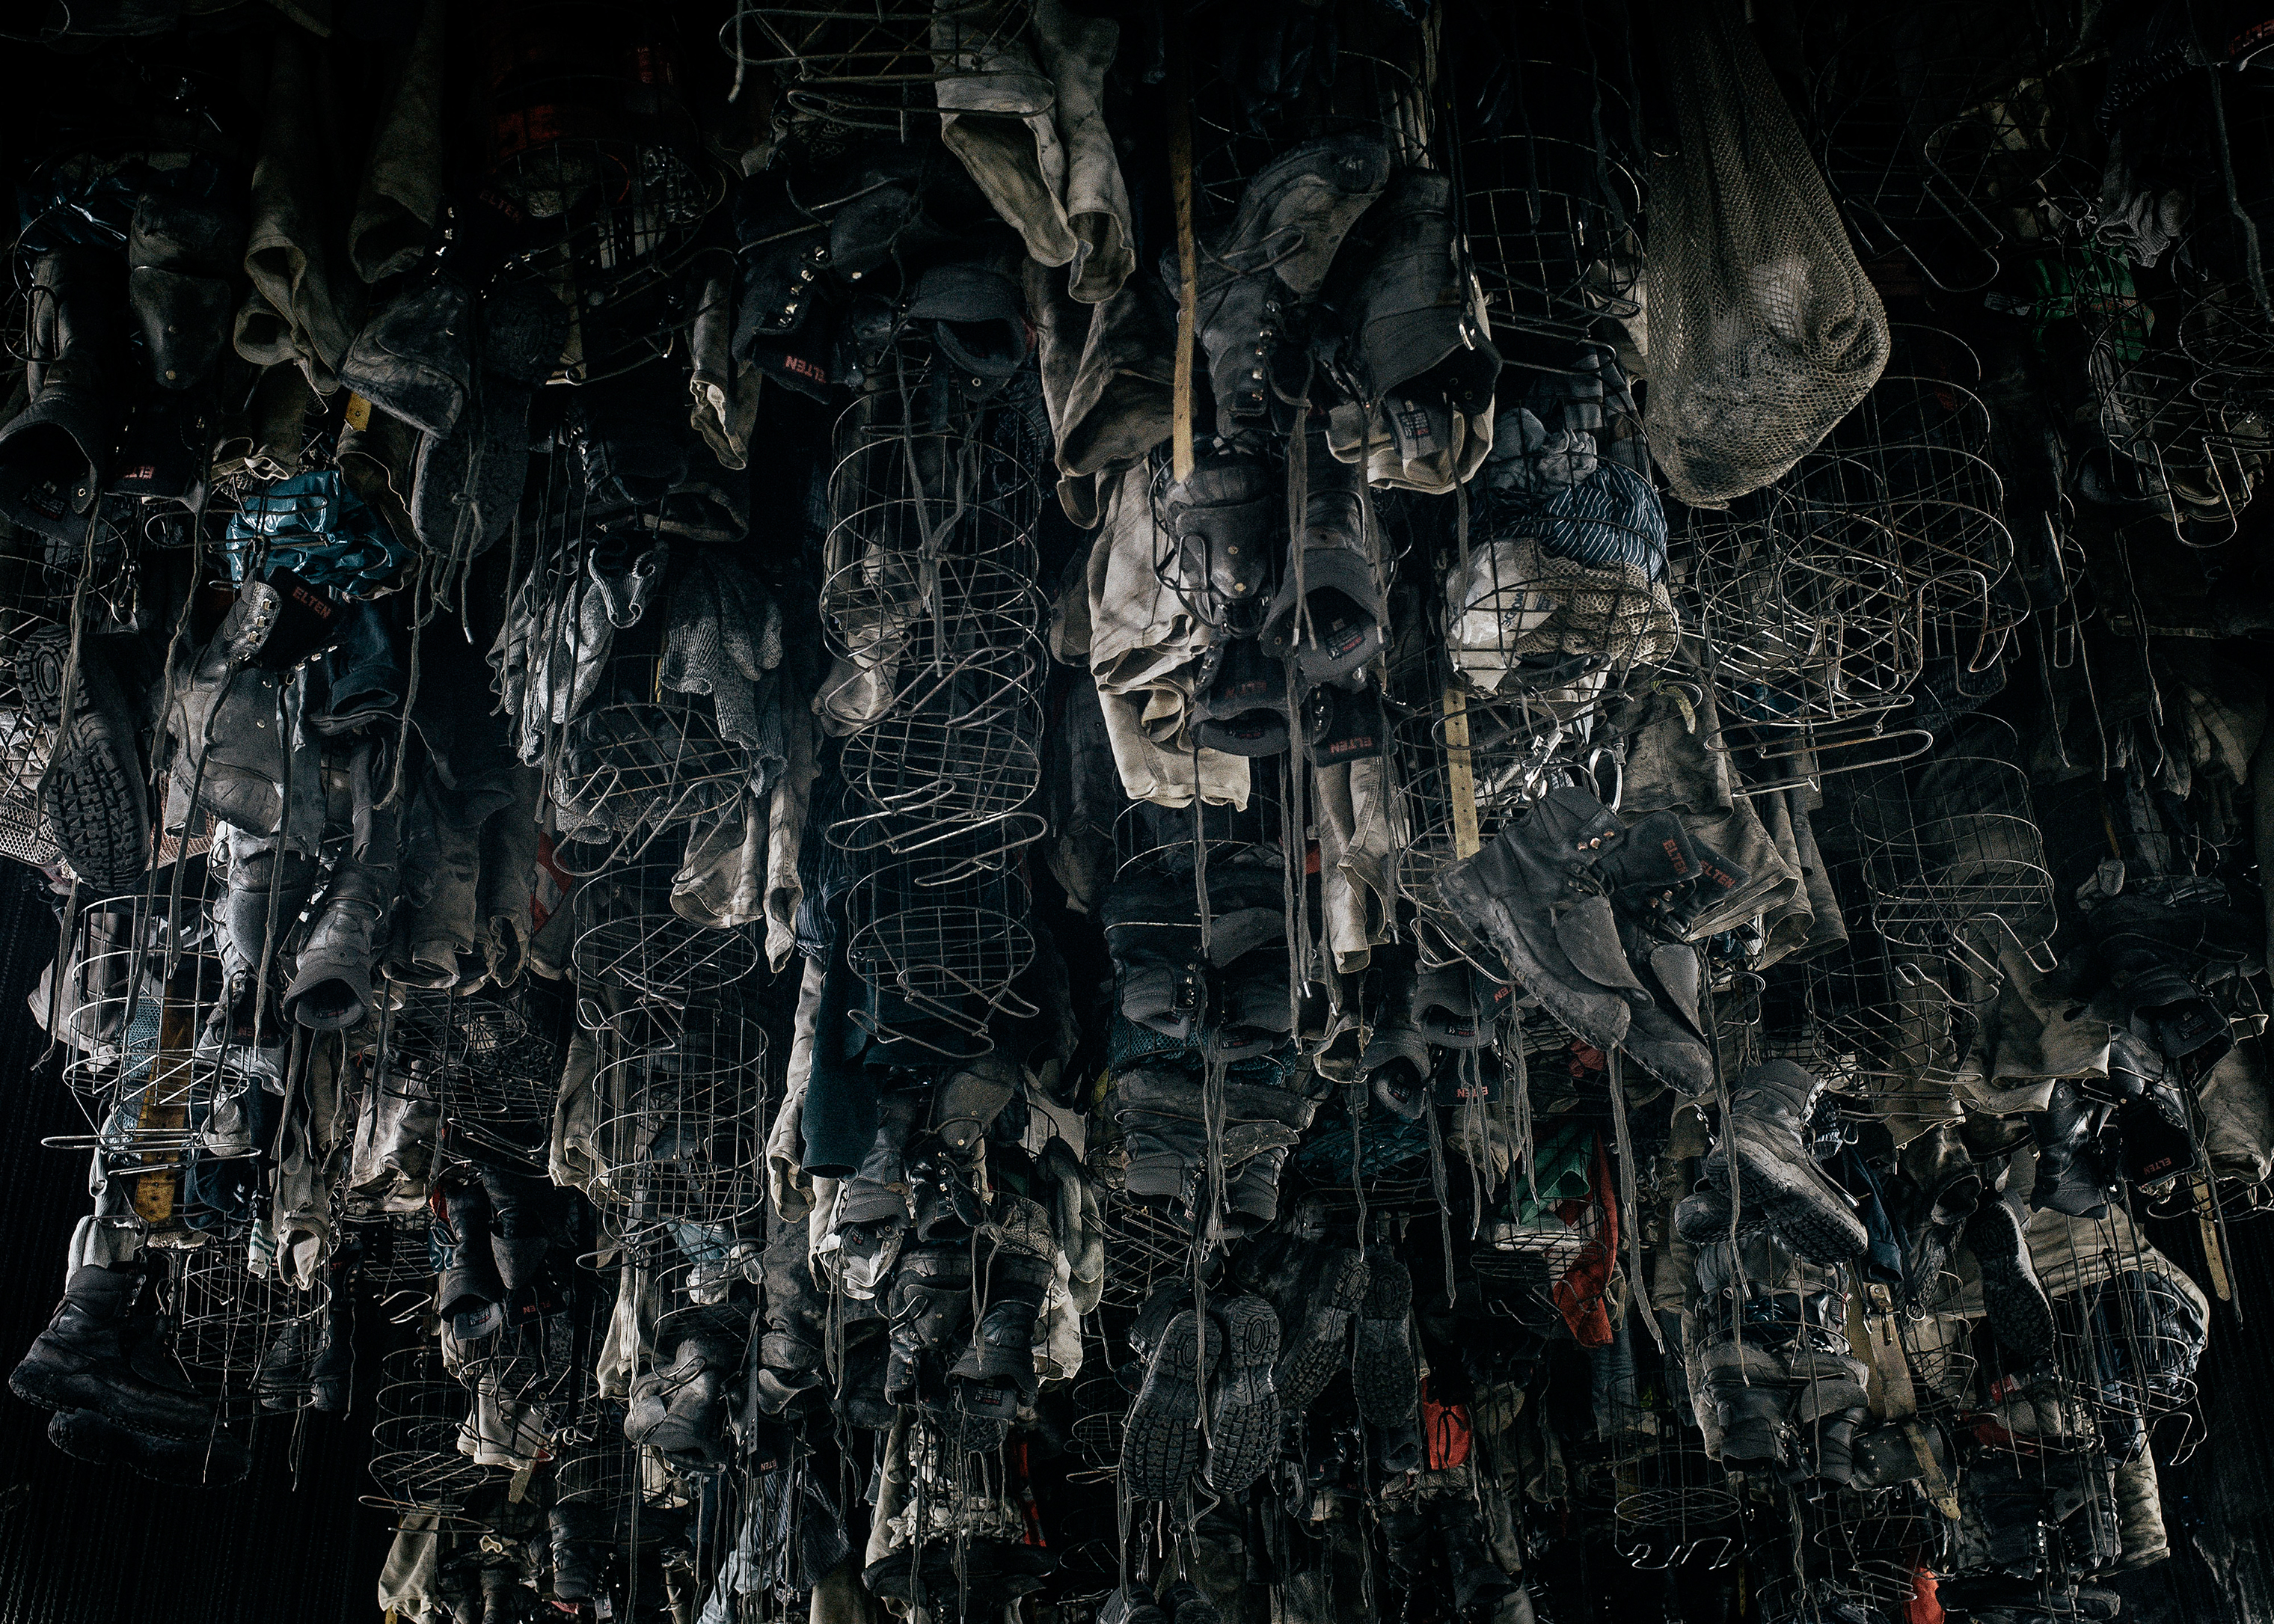 Miners' workwear dries and airs out while hanging from cages, pulled up to the ceiling by chains, in December 2017.